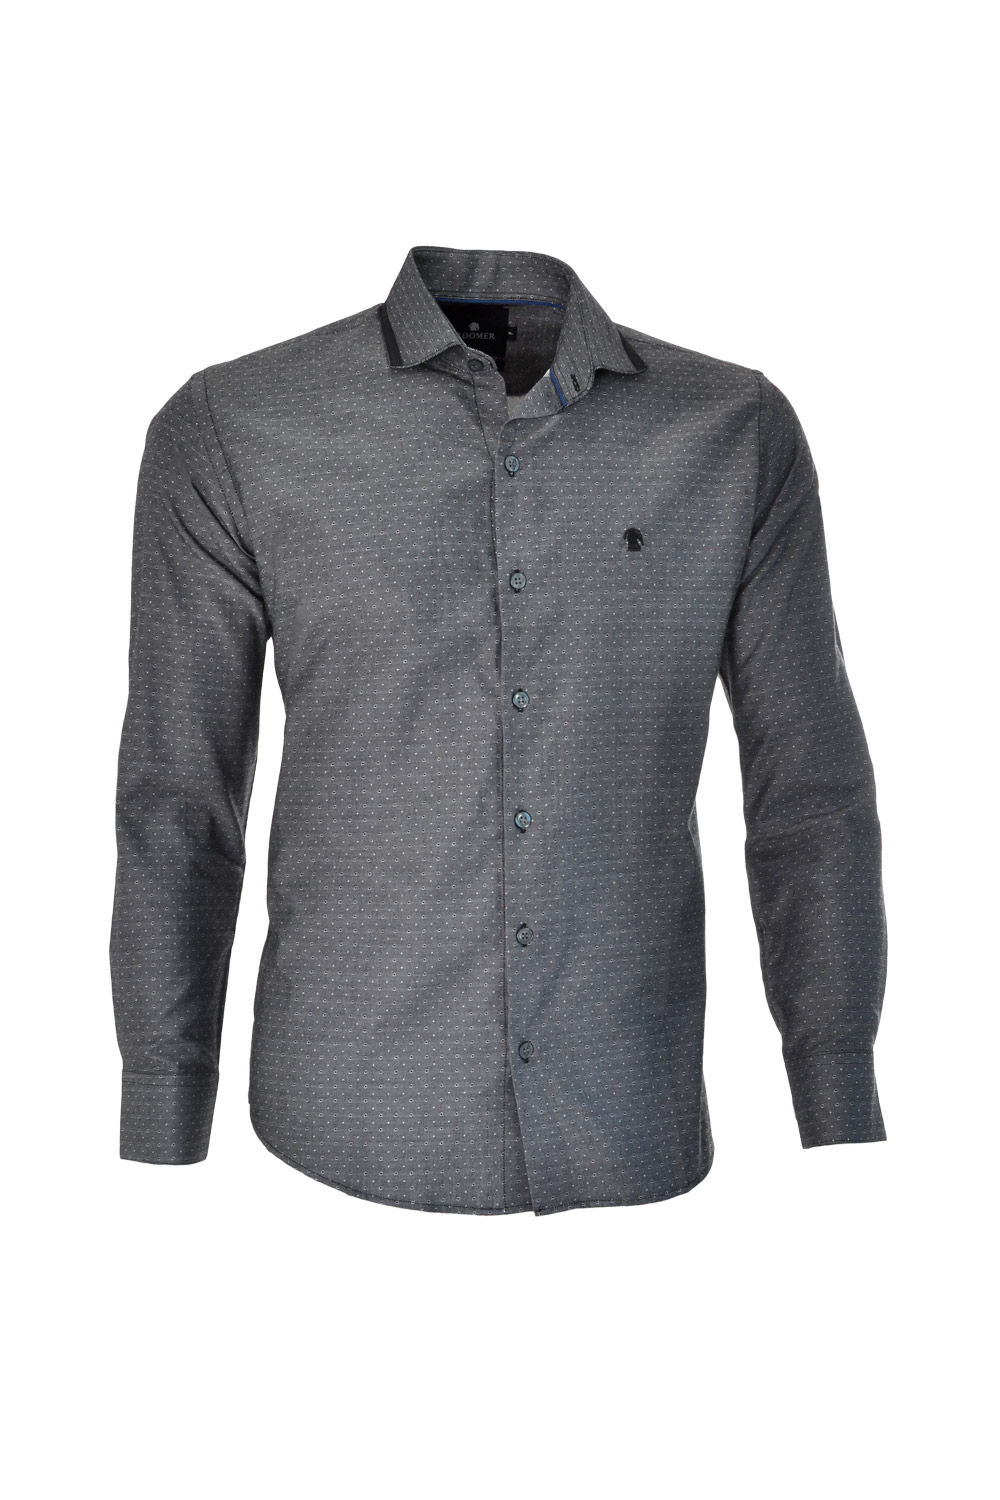 CAMISA ML FASHION SUPER SLIM ALGODAO FIO TINTO MAQUINETADA PRETO